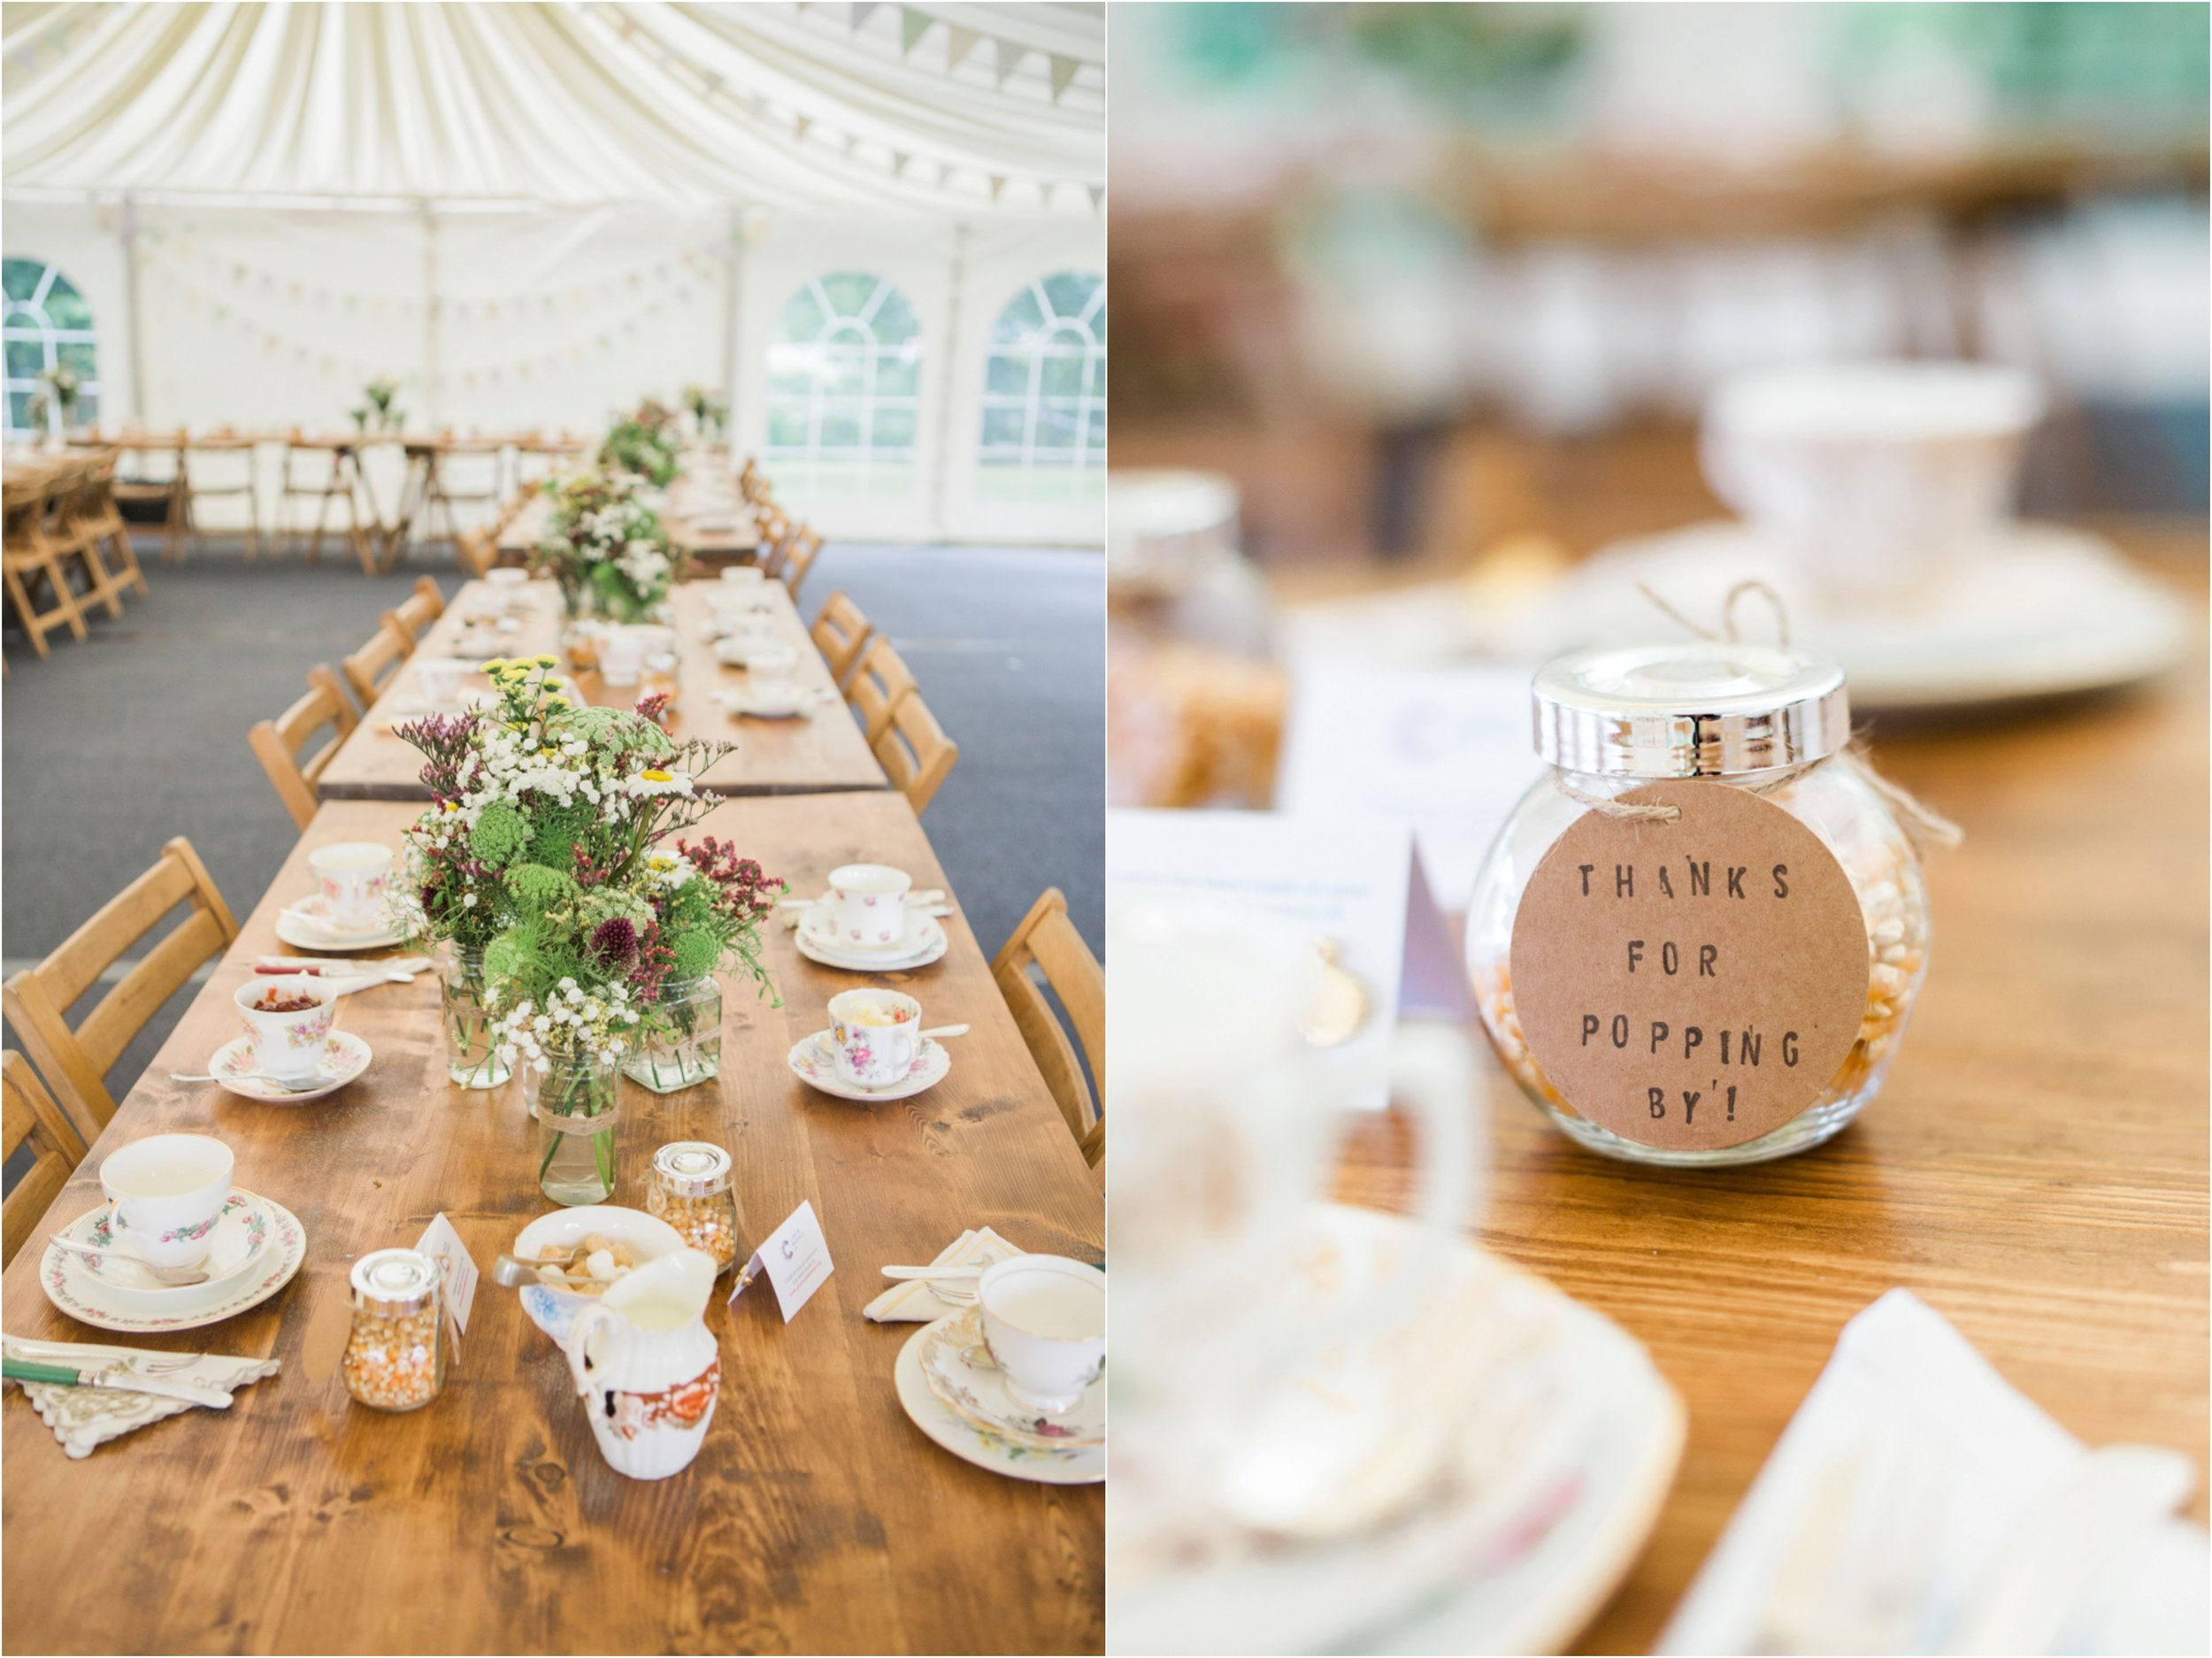 079Lotti & Dave marquee wedding Sophie Evans Photography West Midlands reportage wedding photography.jpg